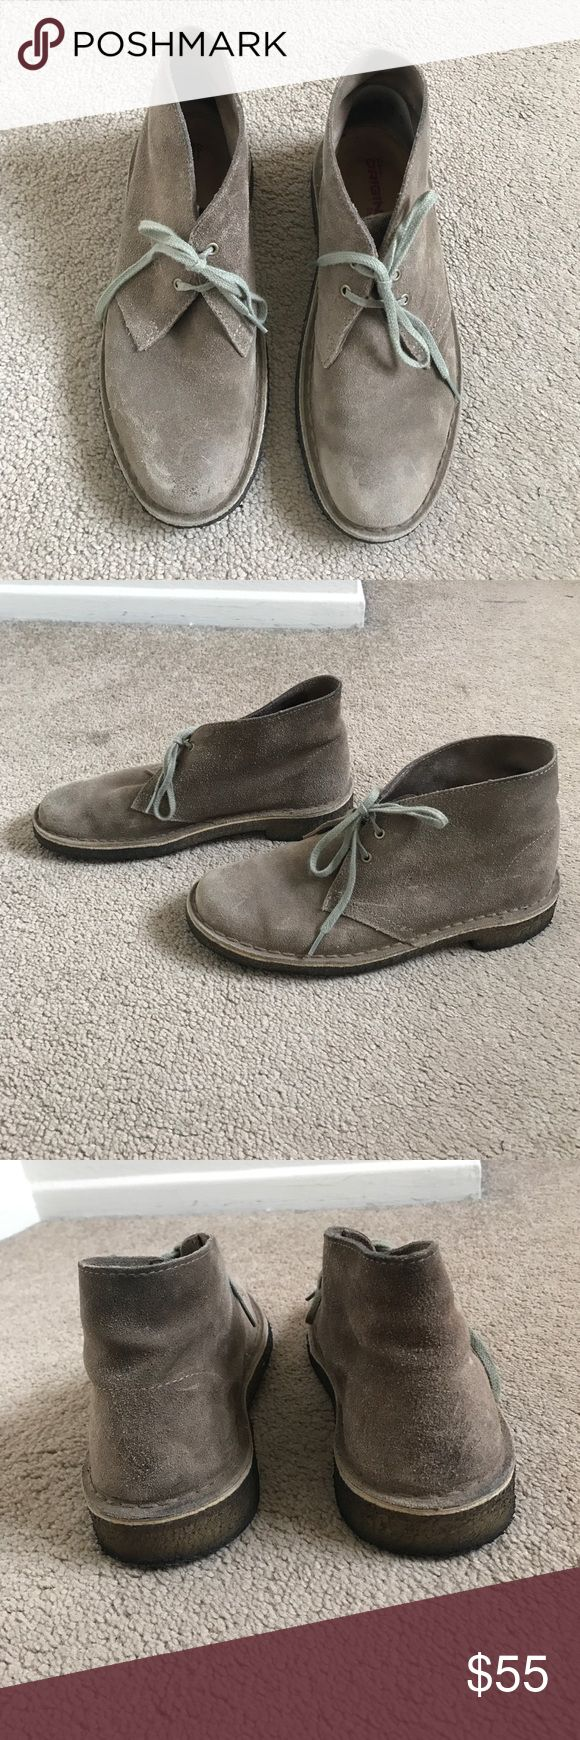 Taupe/ grey women's desert boot Leather/suede, good support. Clark's original. Clarks Shoes Ankle Boots & Booties